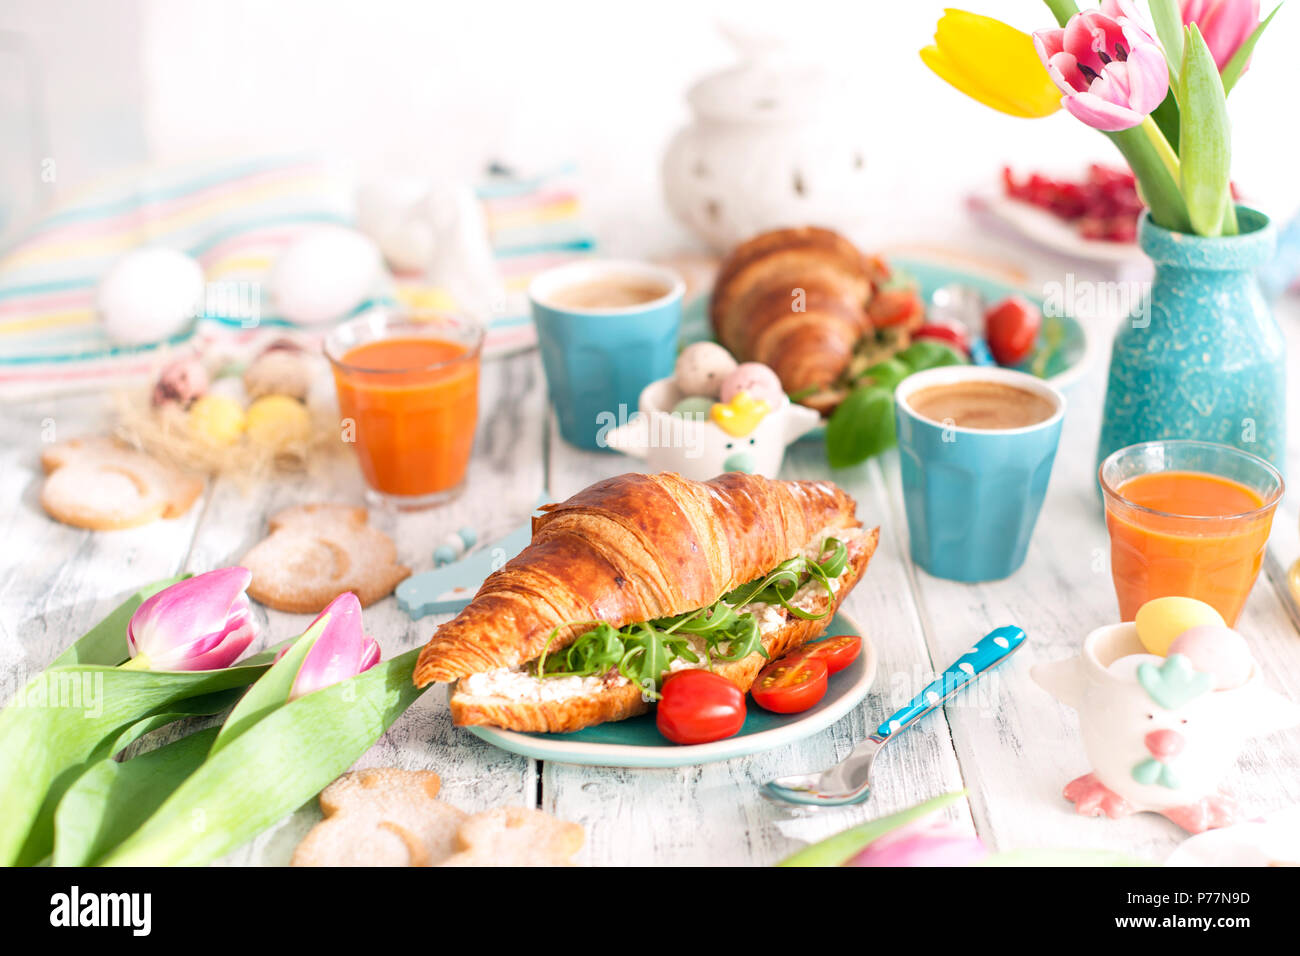 Background with different colors. A family breakfast of croissants with rocket and cheese and aromatic coffee, eggs of different colors, bright dishes and Easter decor, ceramic rabbits - Stock Image